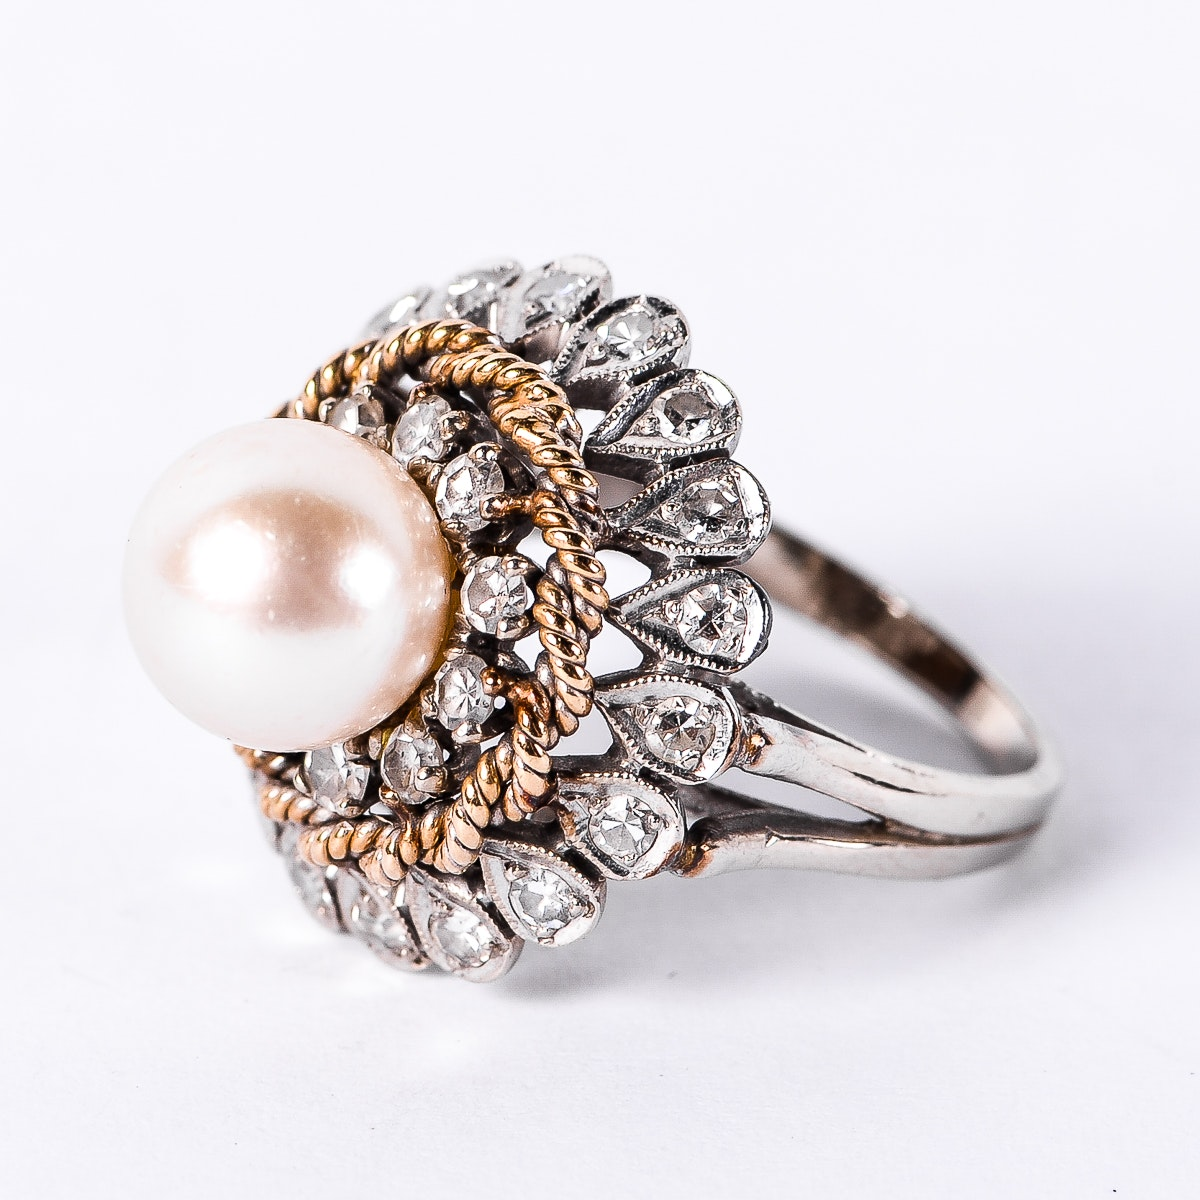 14K Two-Tone Gold, Cultured Pearl, and Diamond Cocktail Ring